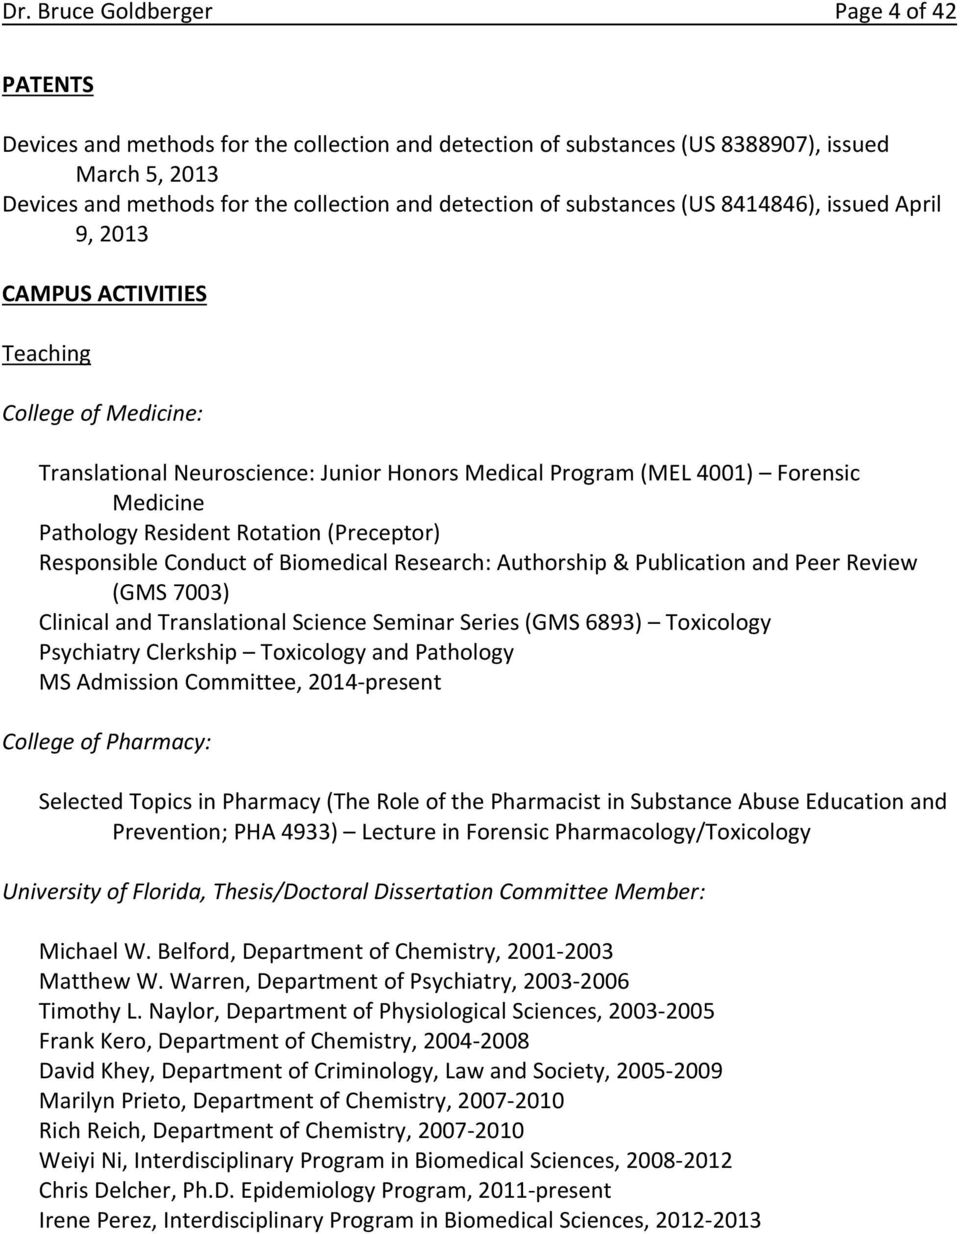 Rotation (Preceptor) Responsible Conduct of Biomedical Research: Authorship & Publication and Peer Review (GMS 7003) Clinical and Translational Science Seminar Series (GMS 6893) Toxicology Psychiatry